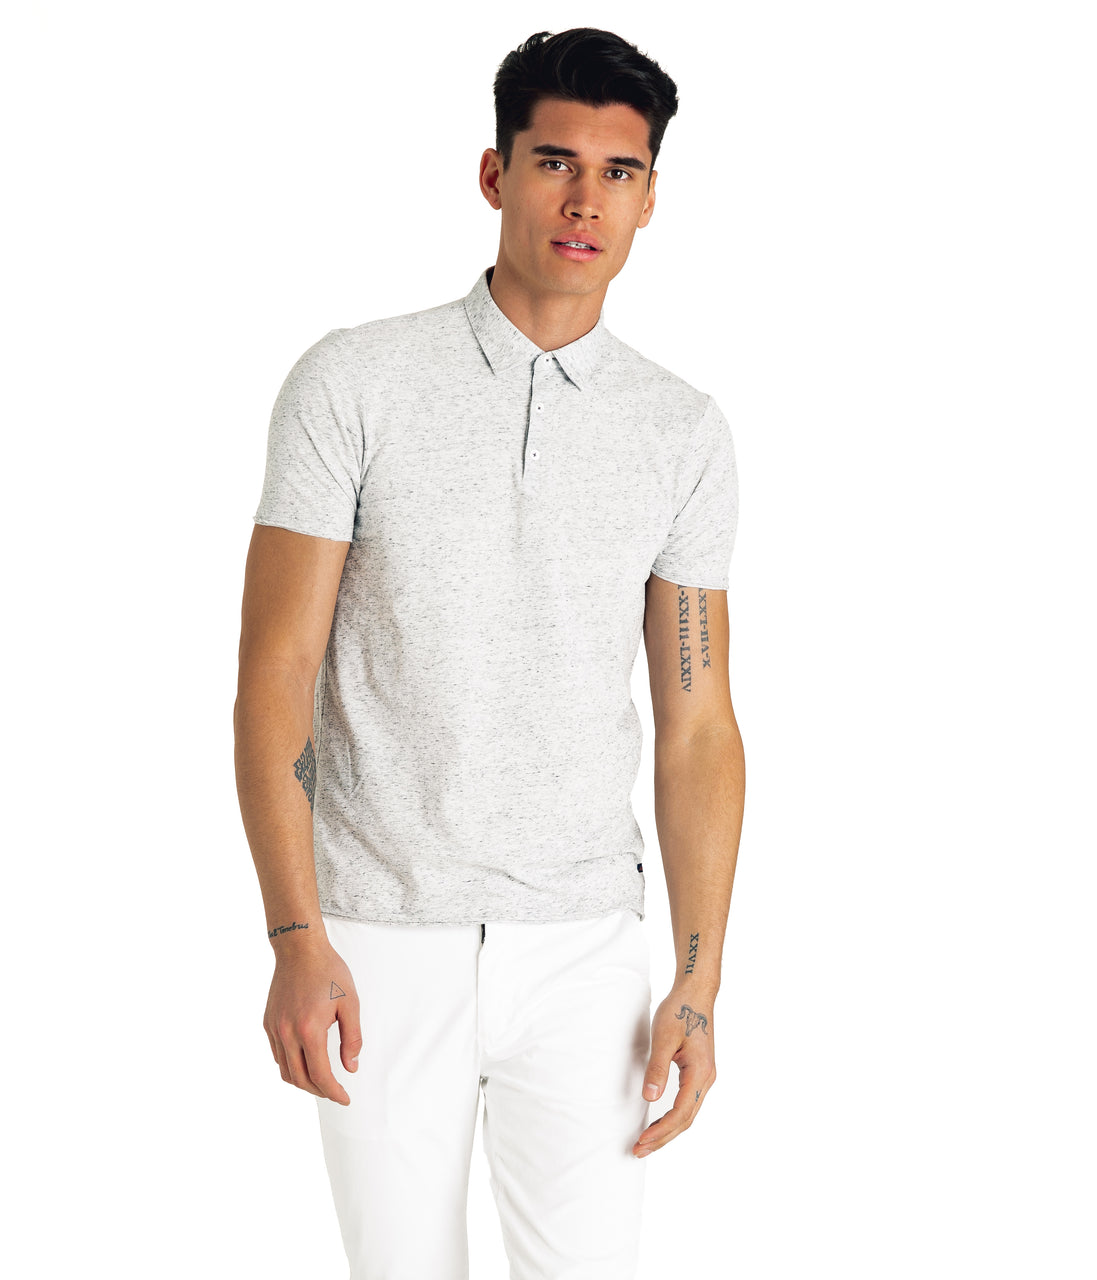 Heather Soft Jersey Polo - Silver Heather - Good Man Brand - Heather Soft Jersey Polo - Silver Heather